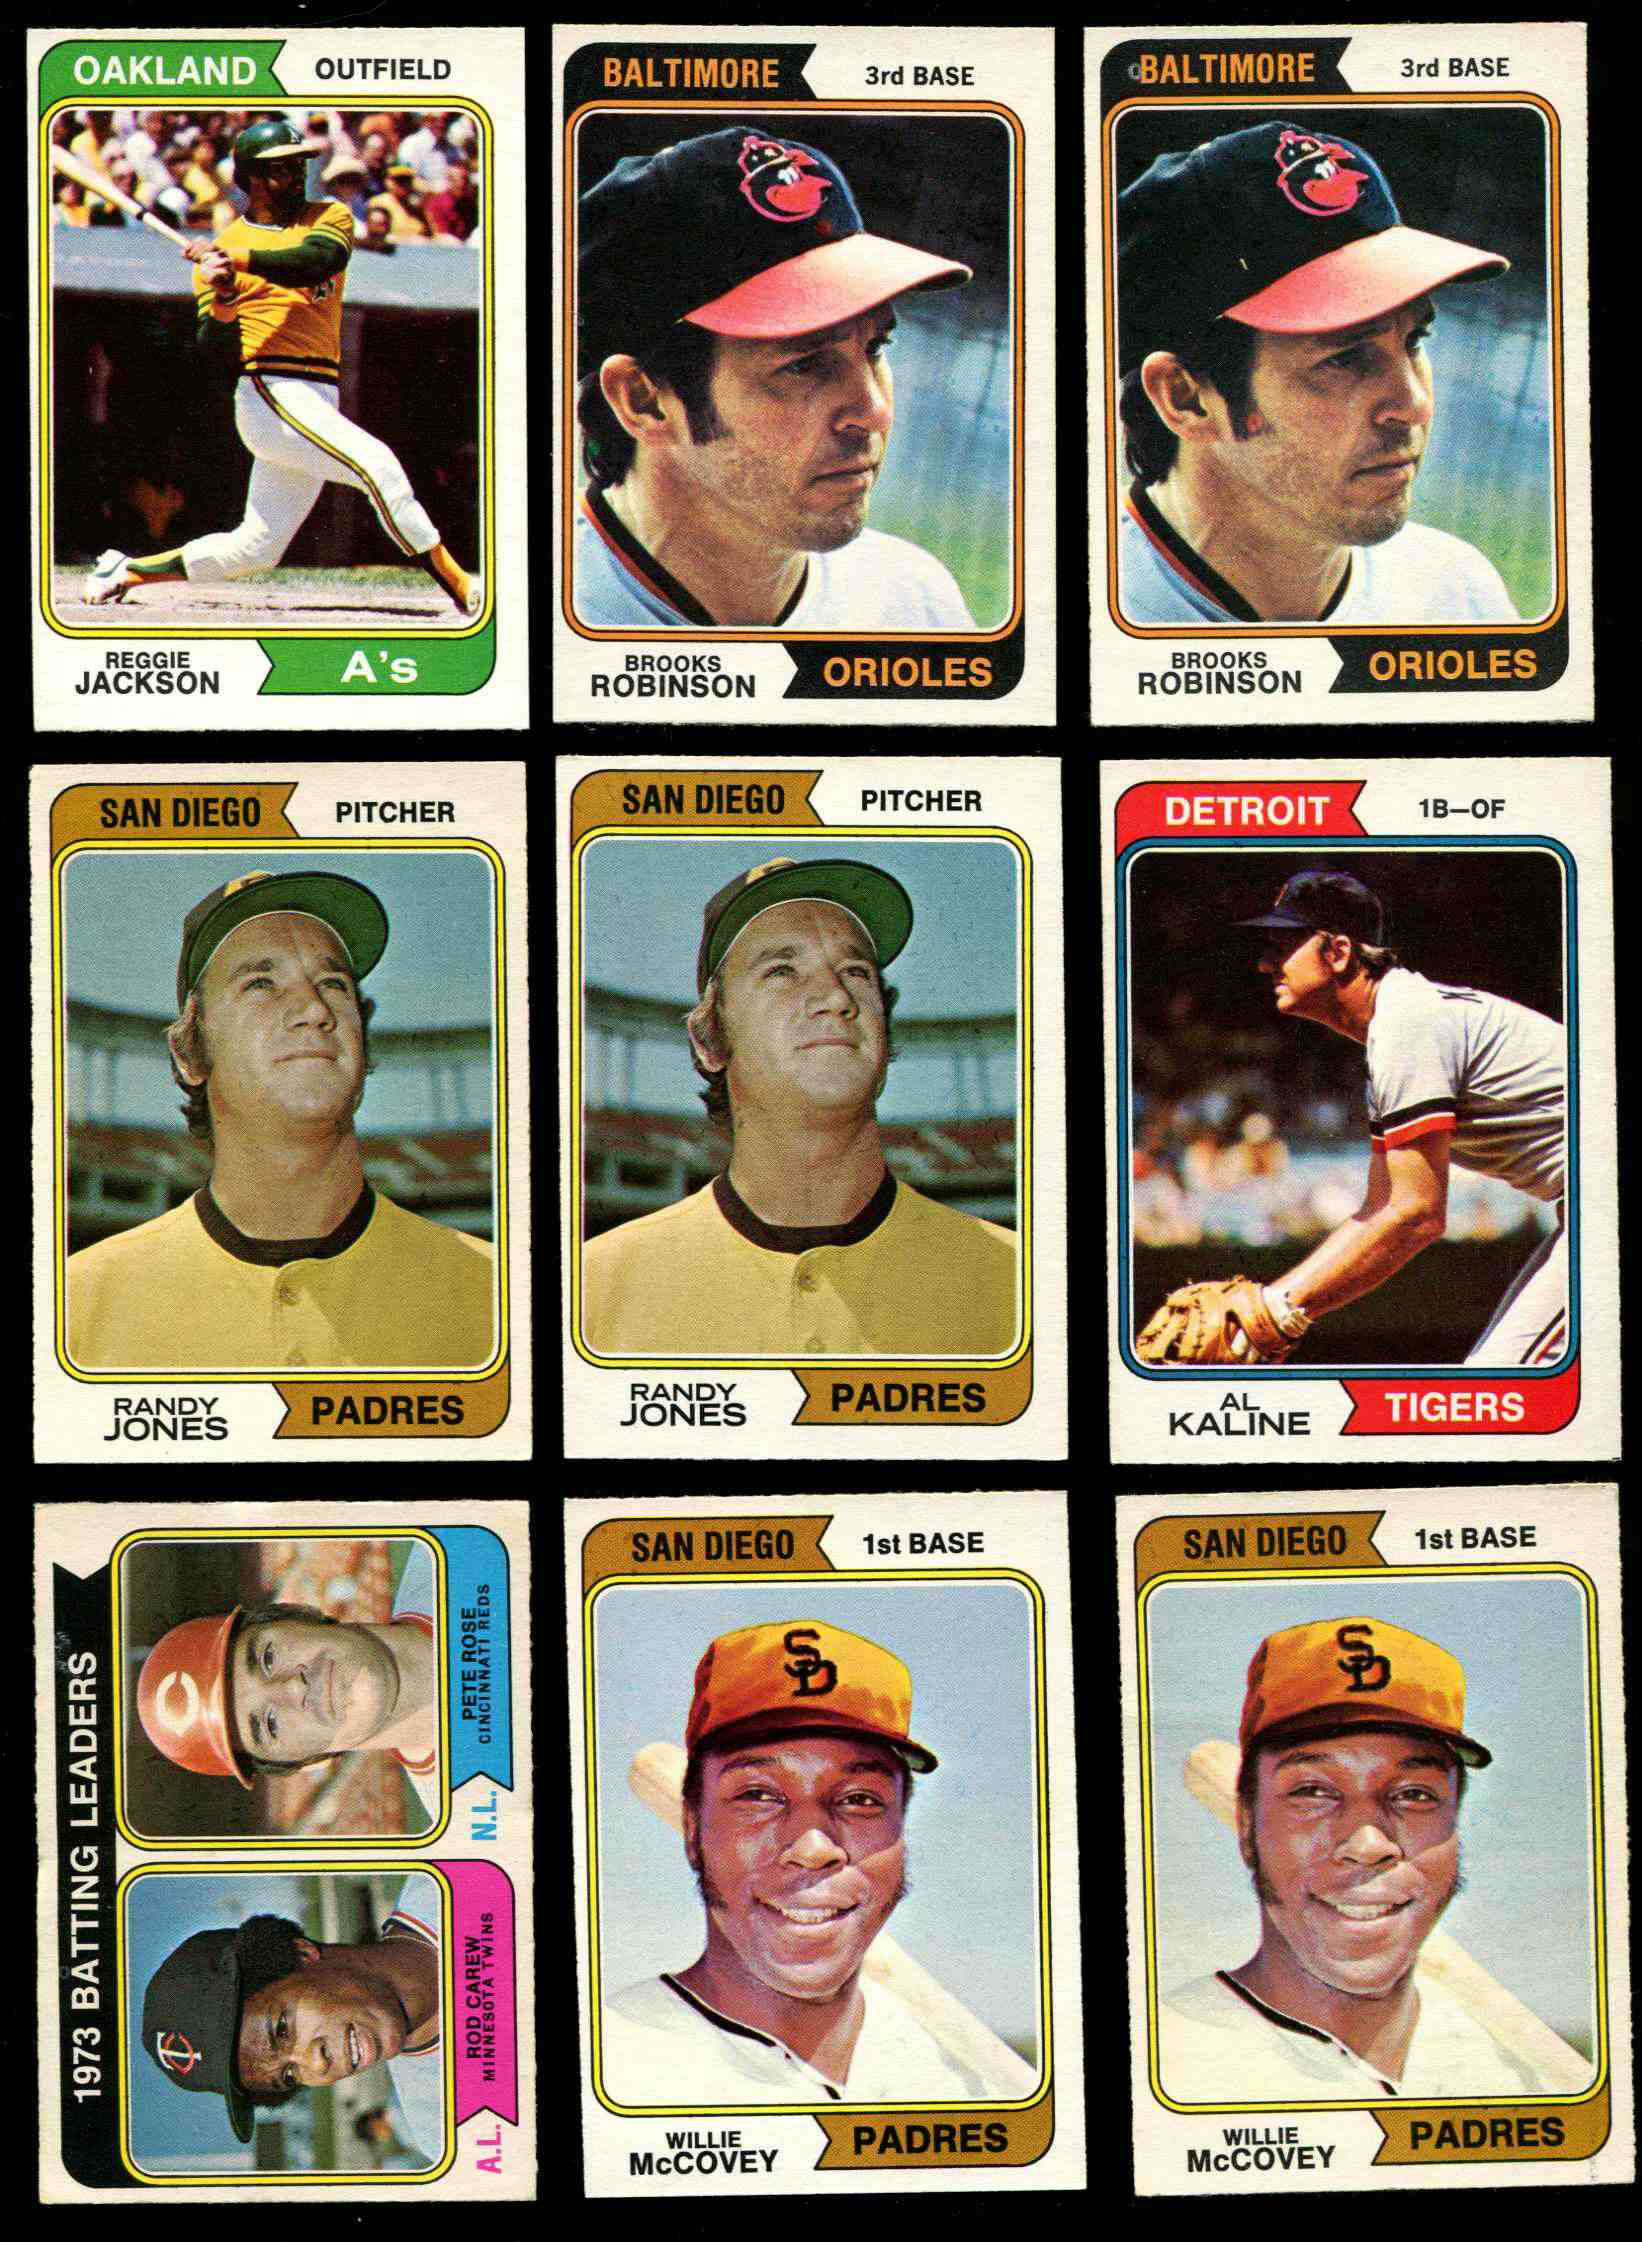 1974 O-Pee-Chee/OPC #130 Reggie Jackson (A's) Baseball cards value